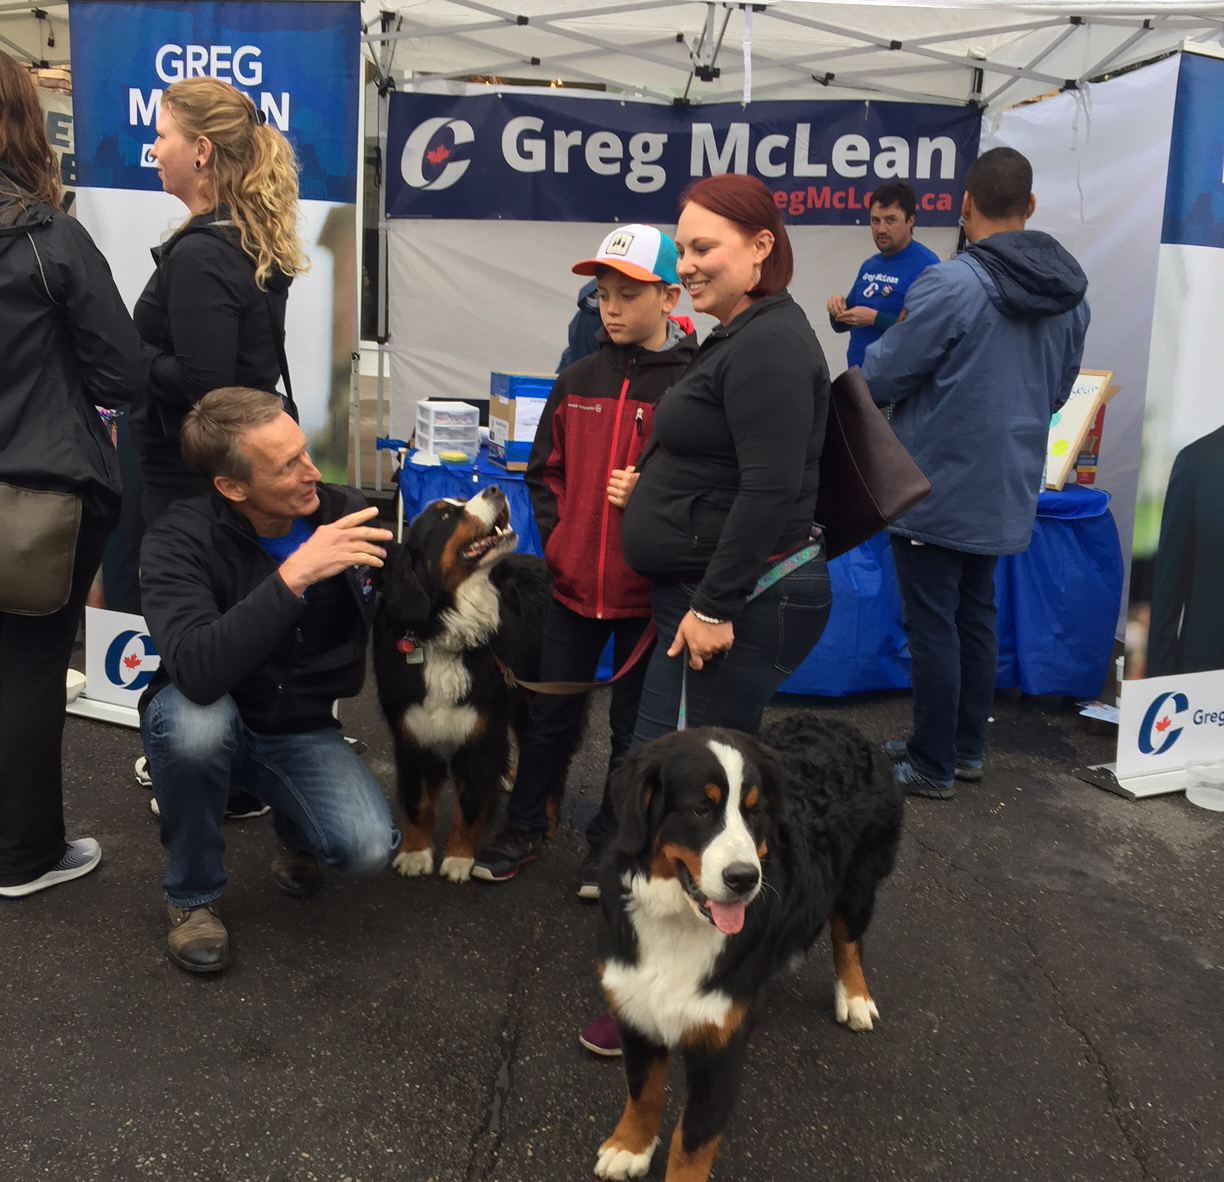 Courting the Bernese Mountain Dog vote. Aren't they beautiful animals!